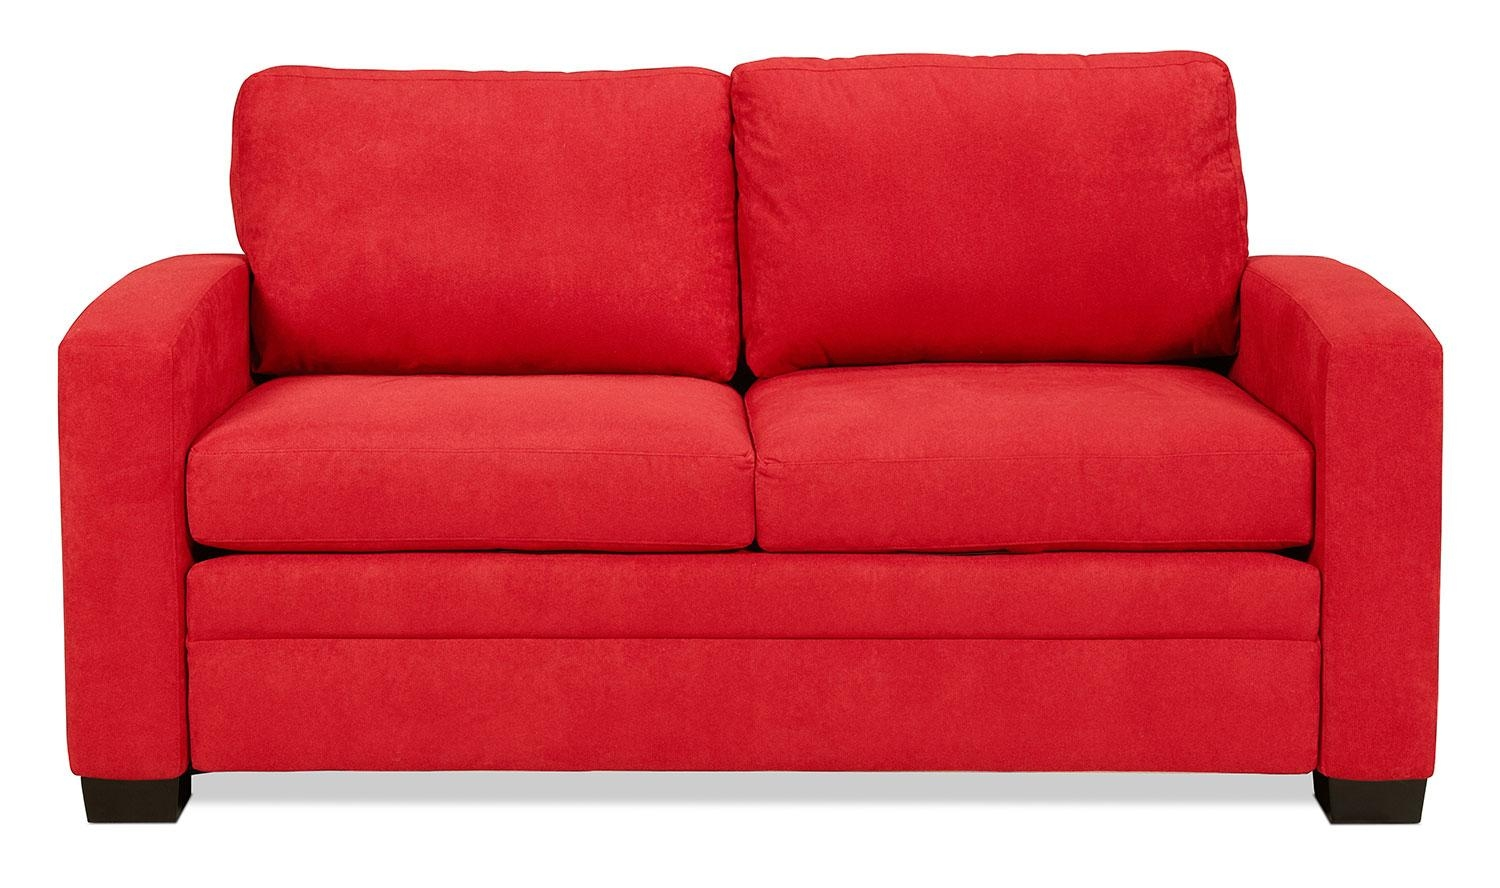 Levin Signature Full Sleeper Sofa – Chili Red | Levin Furniture With Regard To Red Sleeper Sofa (View 2 of 20)